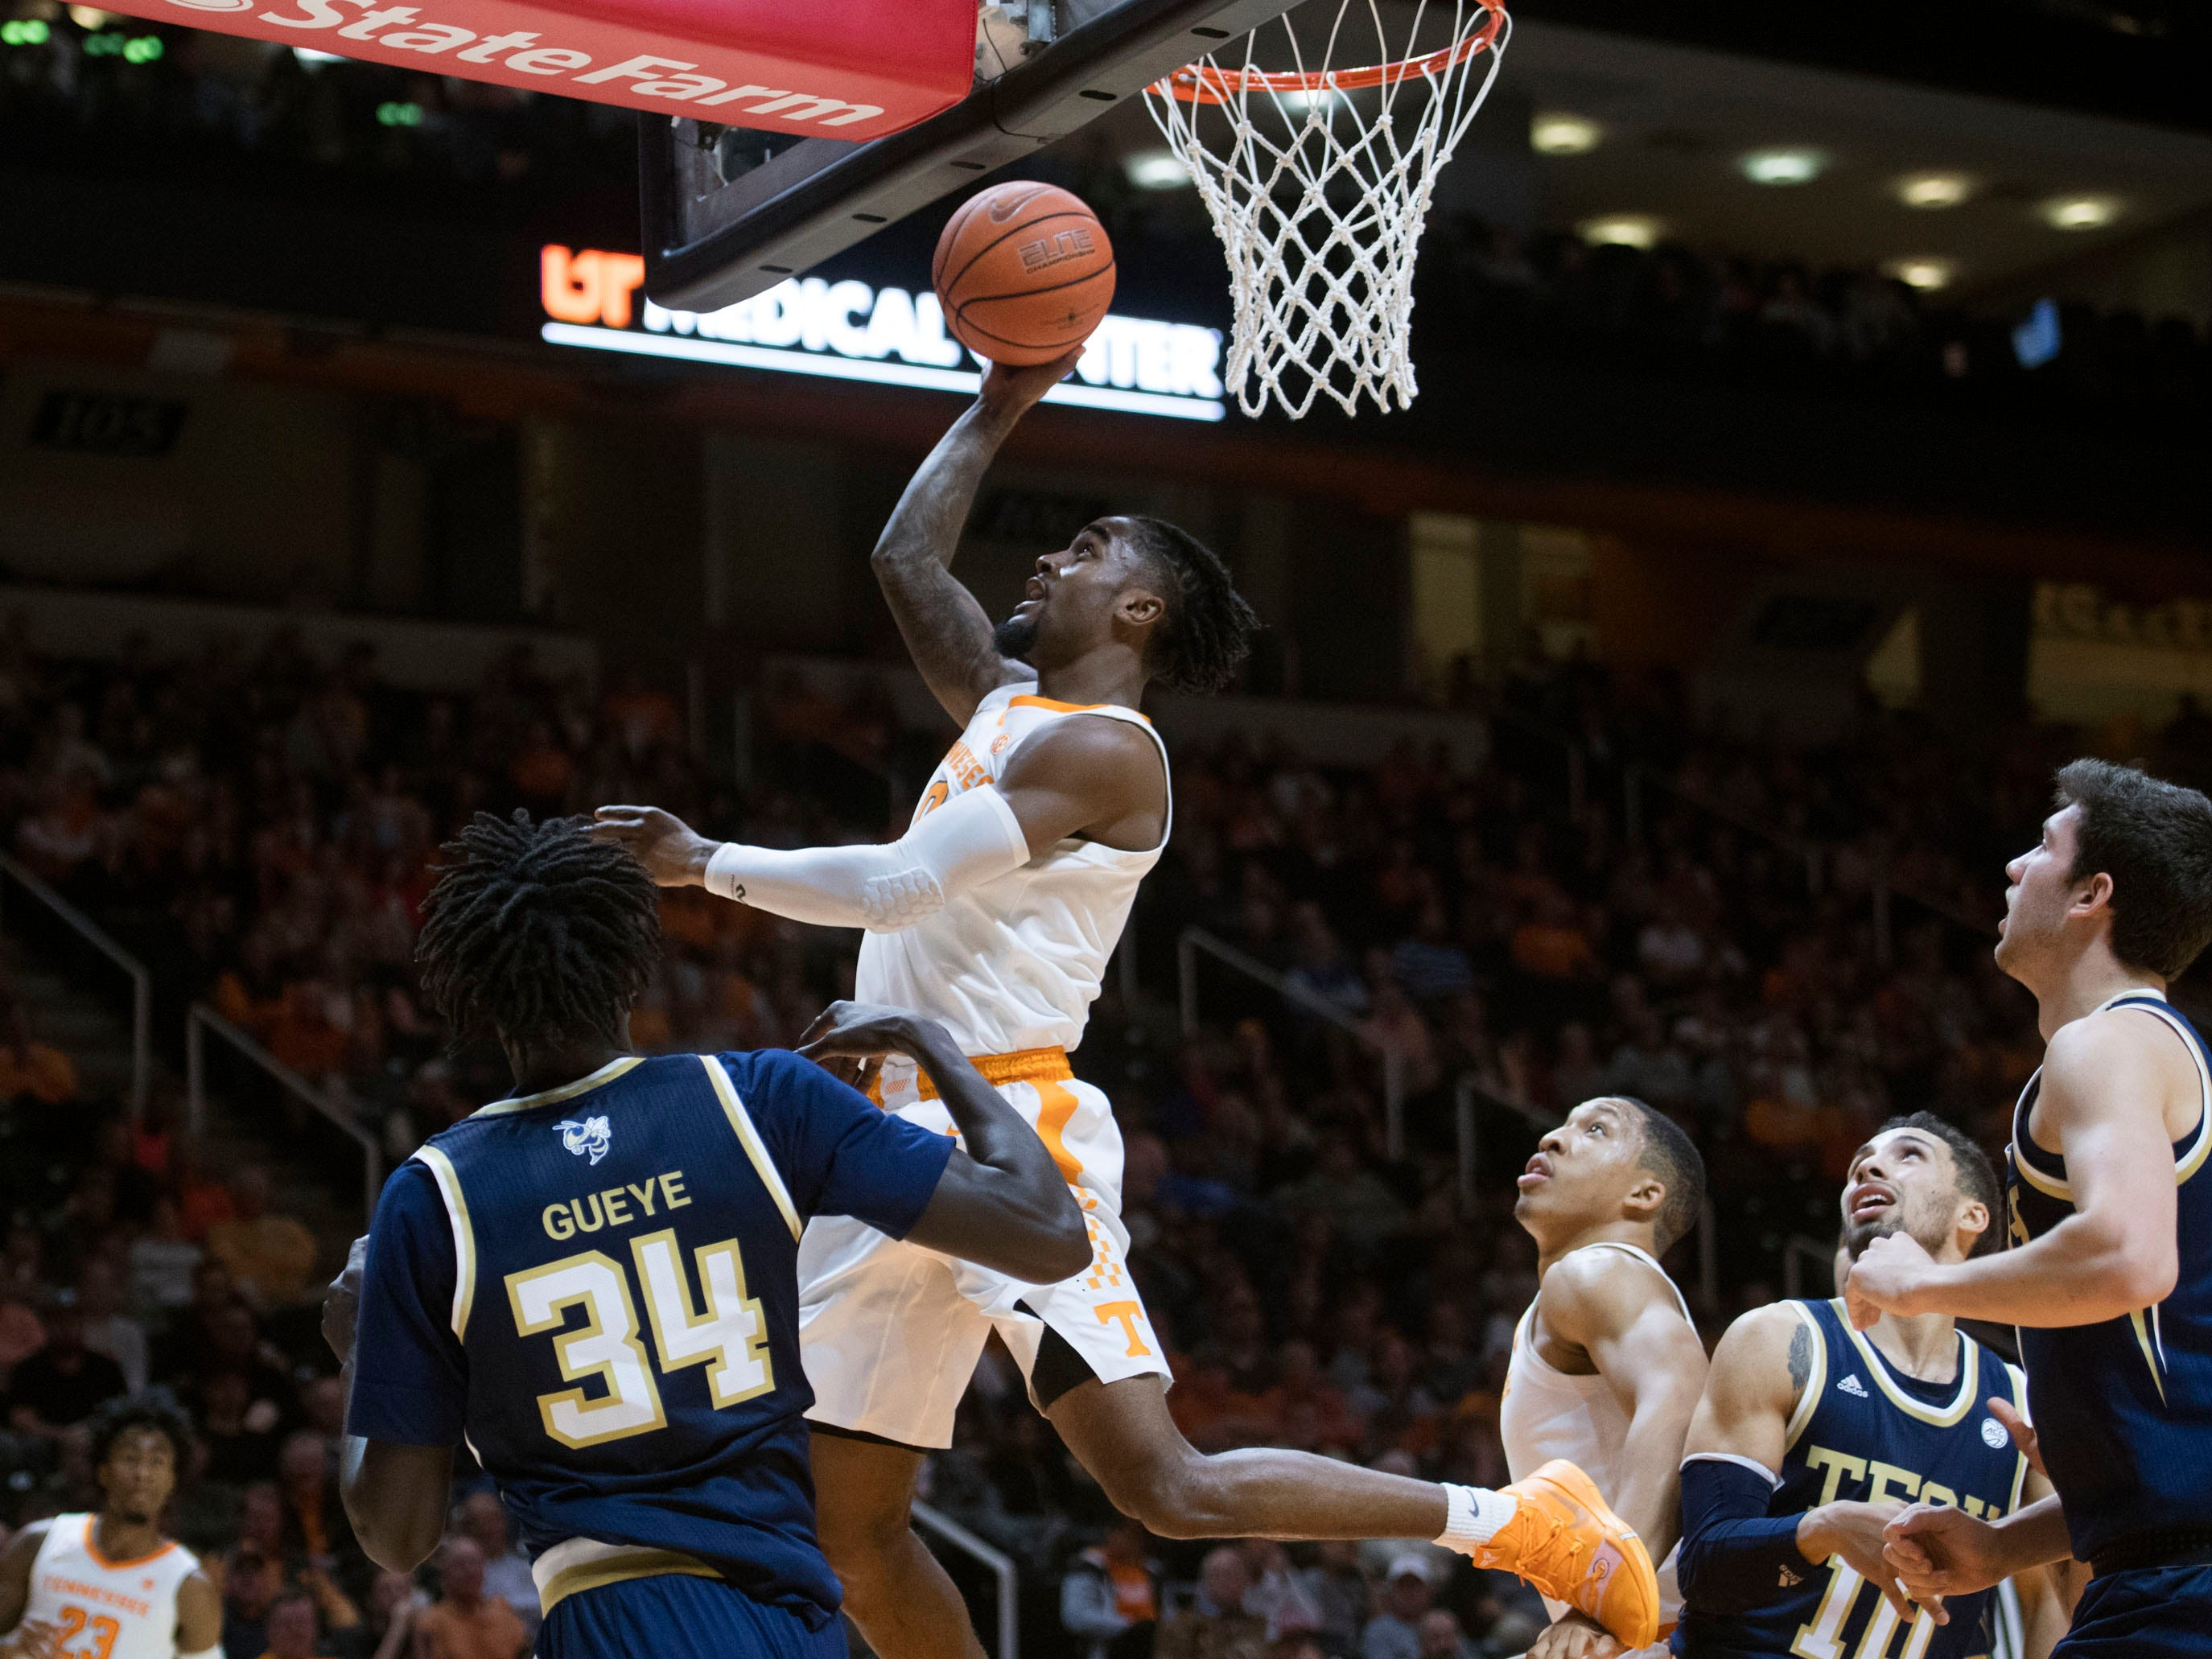 Tennessee's Jordan Bone (0) scores against Georgia Tech. Tennessee defeated Georgia Tech, 66-53, at Thompson-Boling Arena on Tuesday, November 13, 2018.